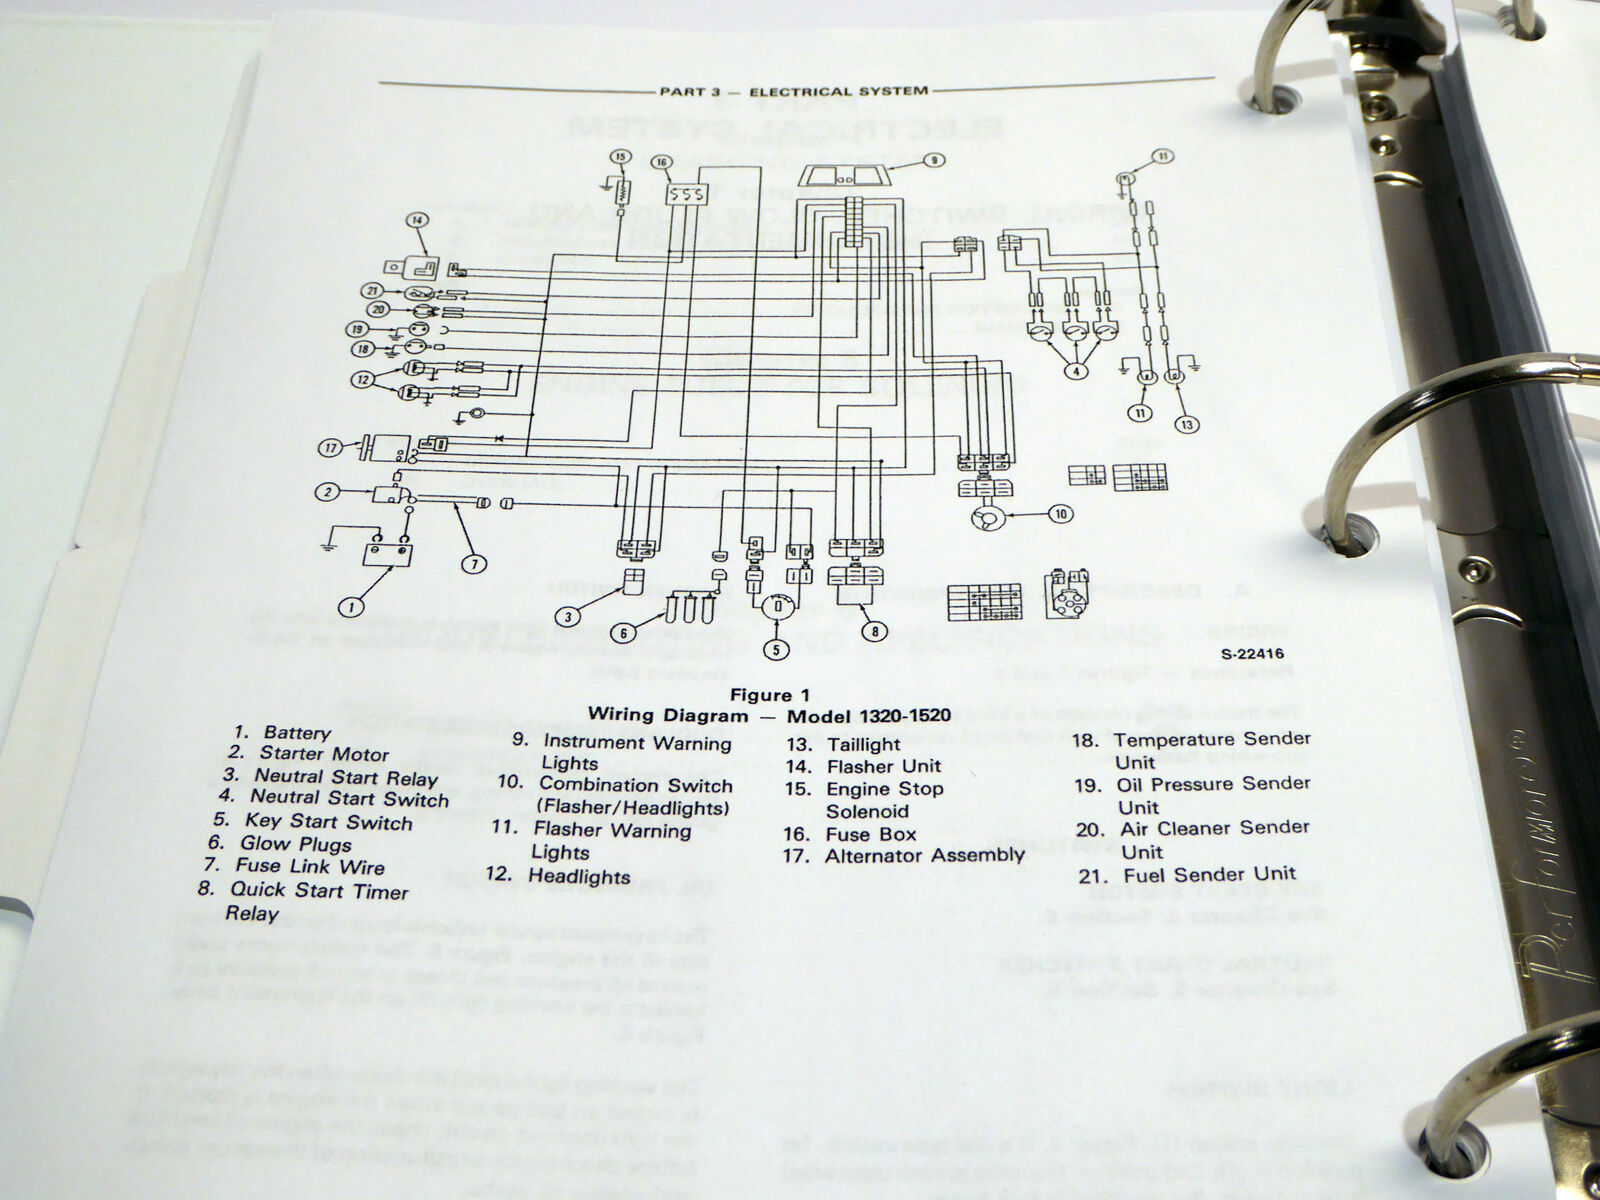 ford 1720 wiring diagram original ford 1320 1520 1720 tractors service manual in binder  original ford 1320 1520 1720 tractors